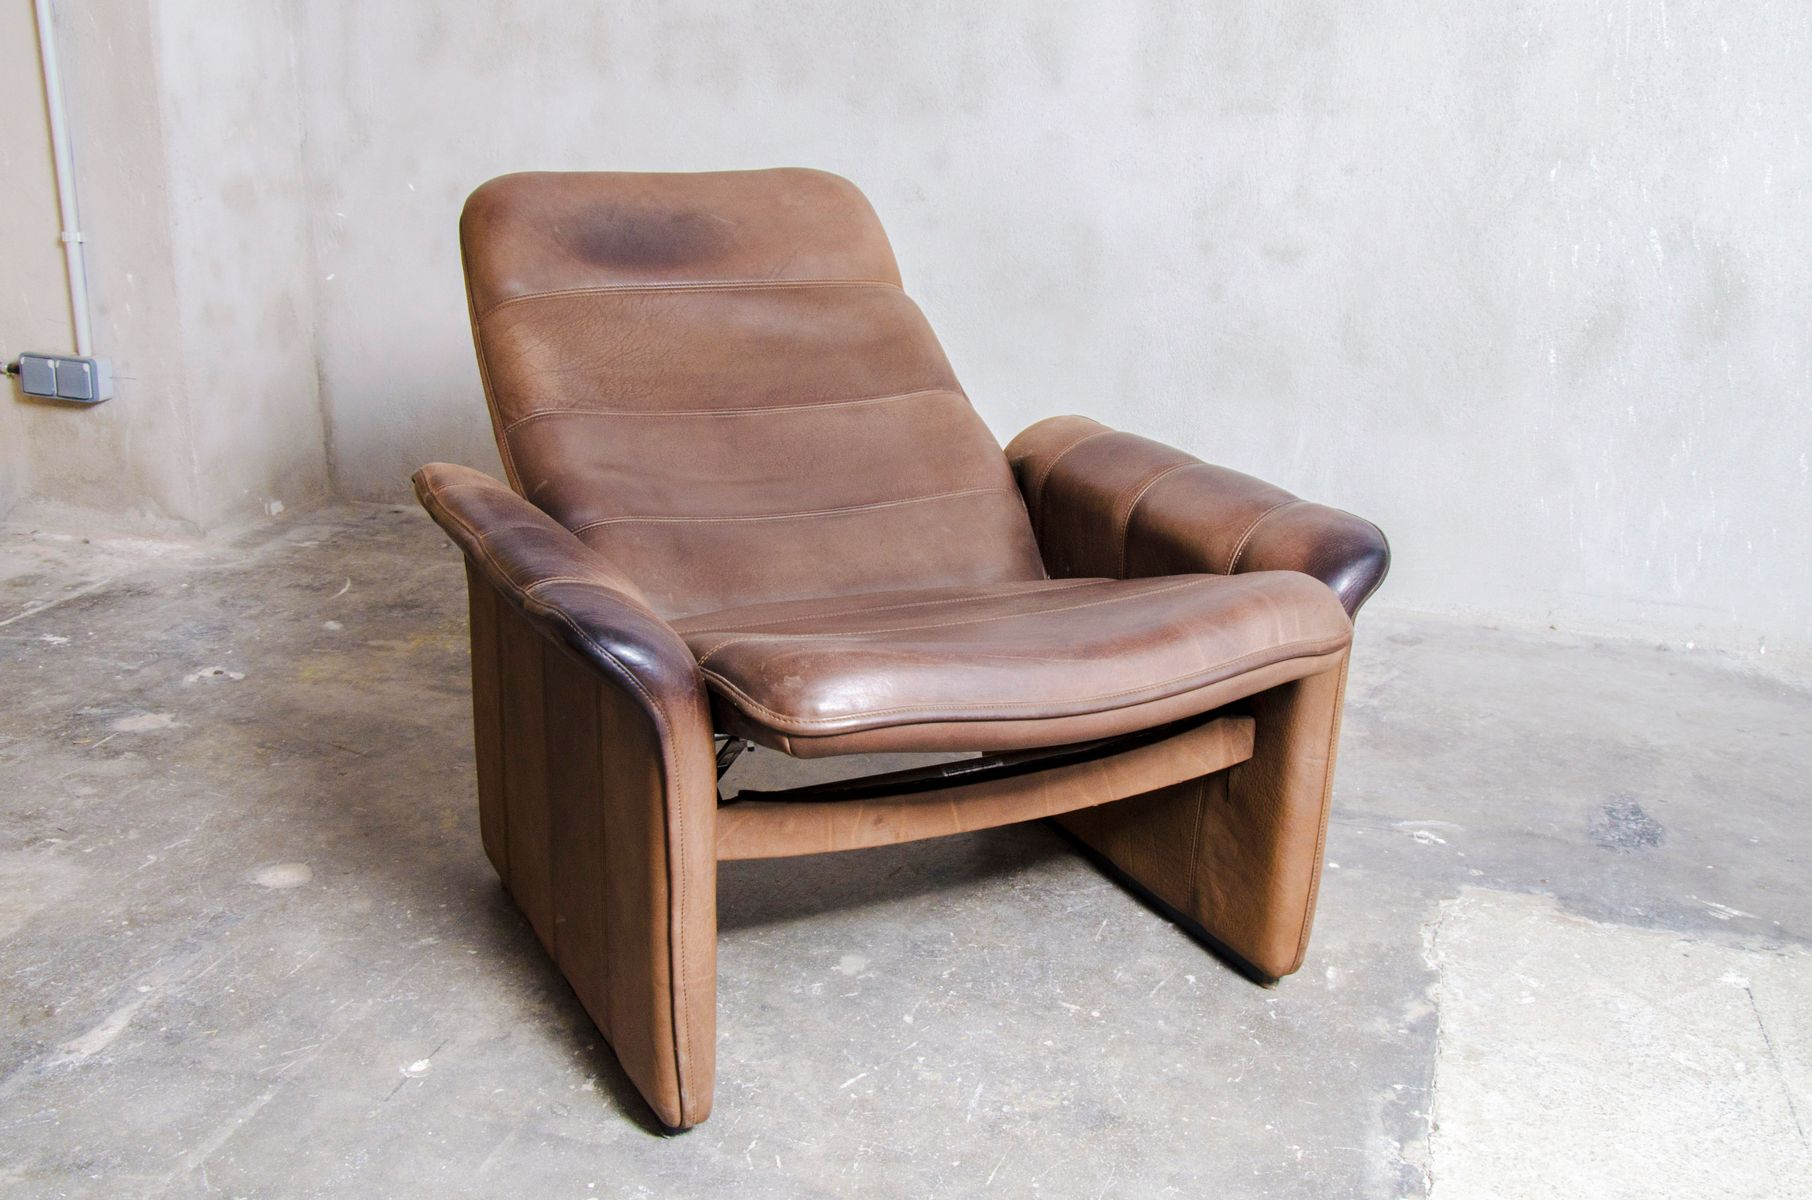 DS 50 Reclining Lounge Chair With Ottoman From De Sede, 1970s